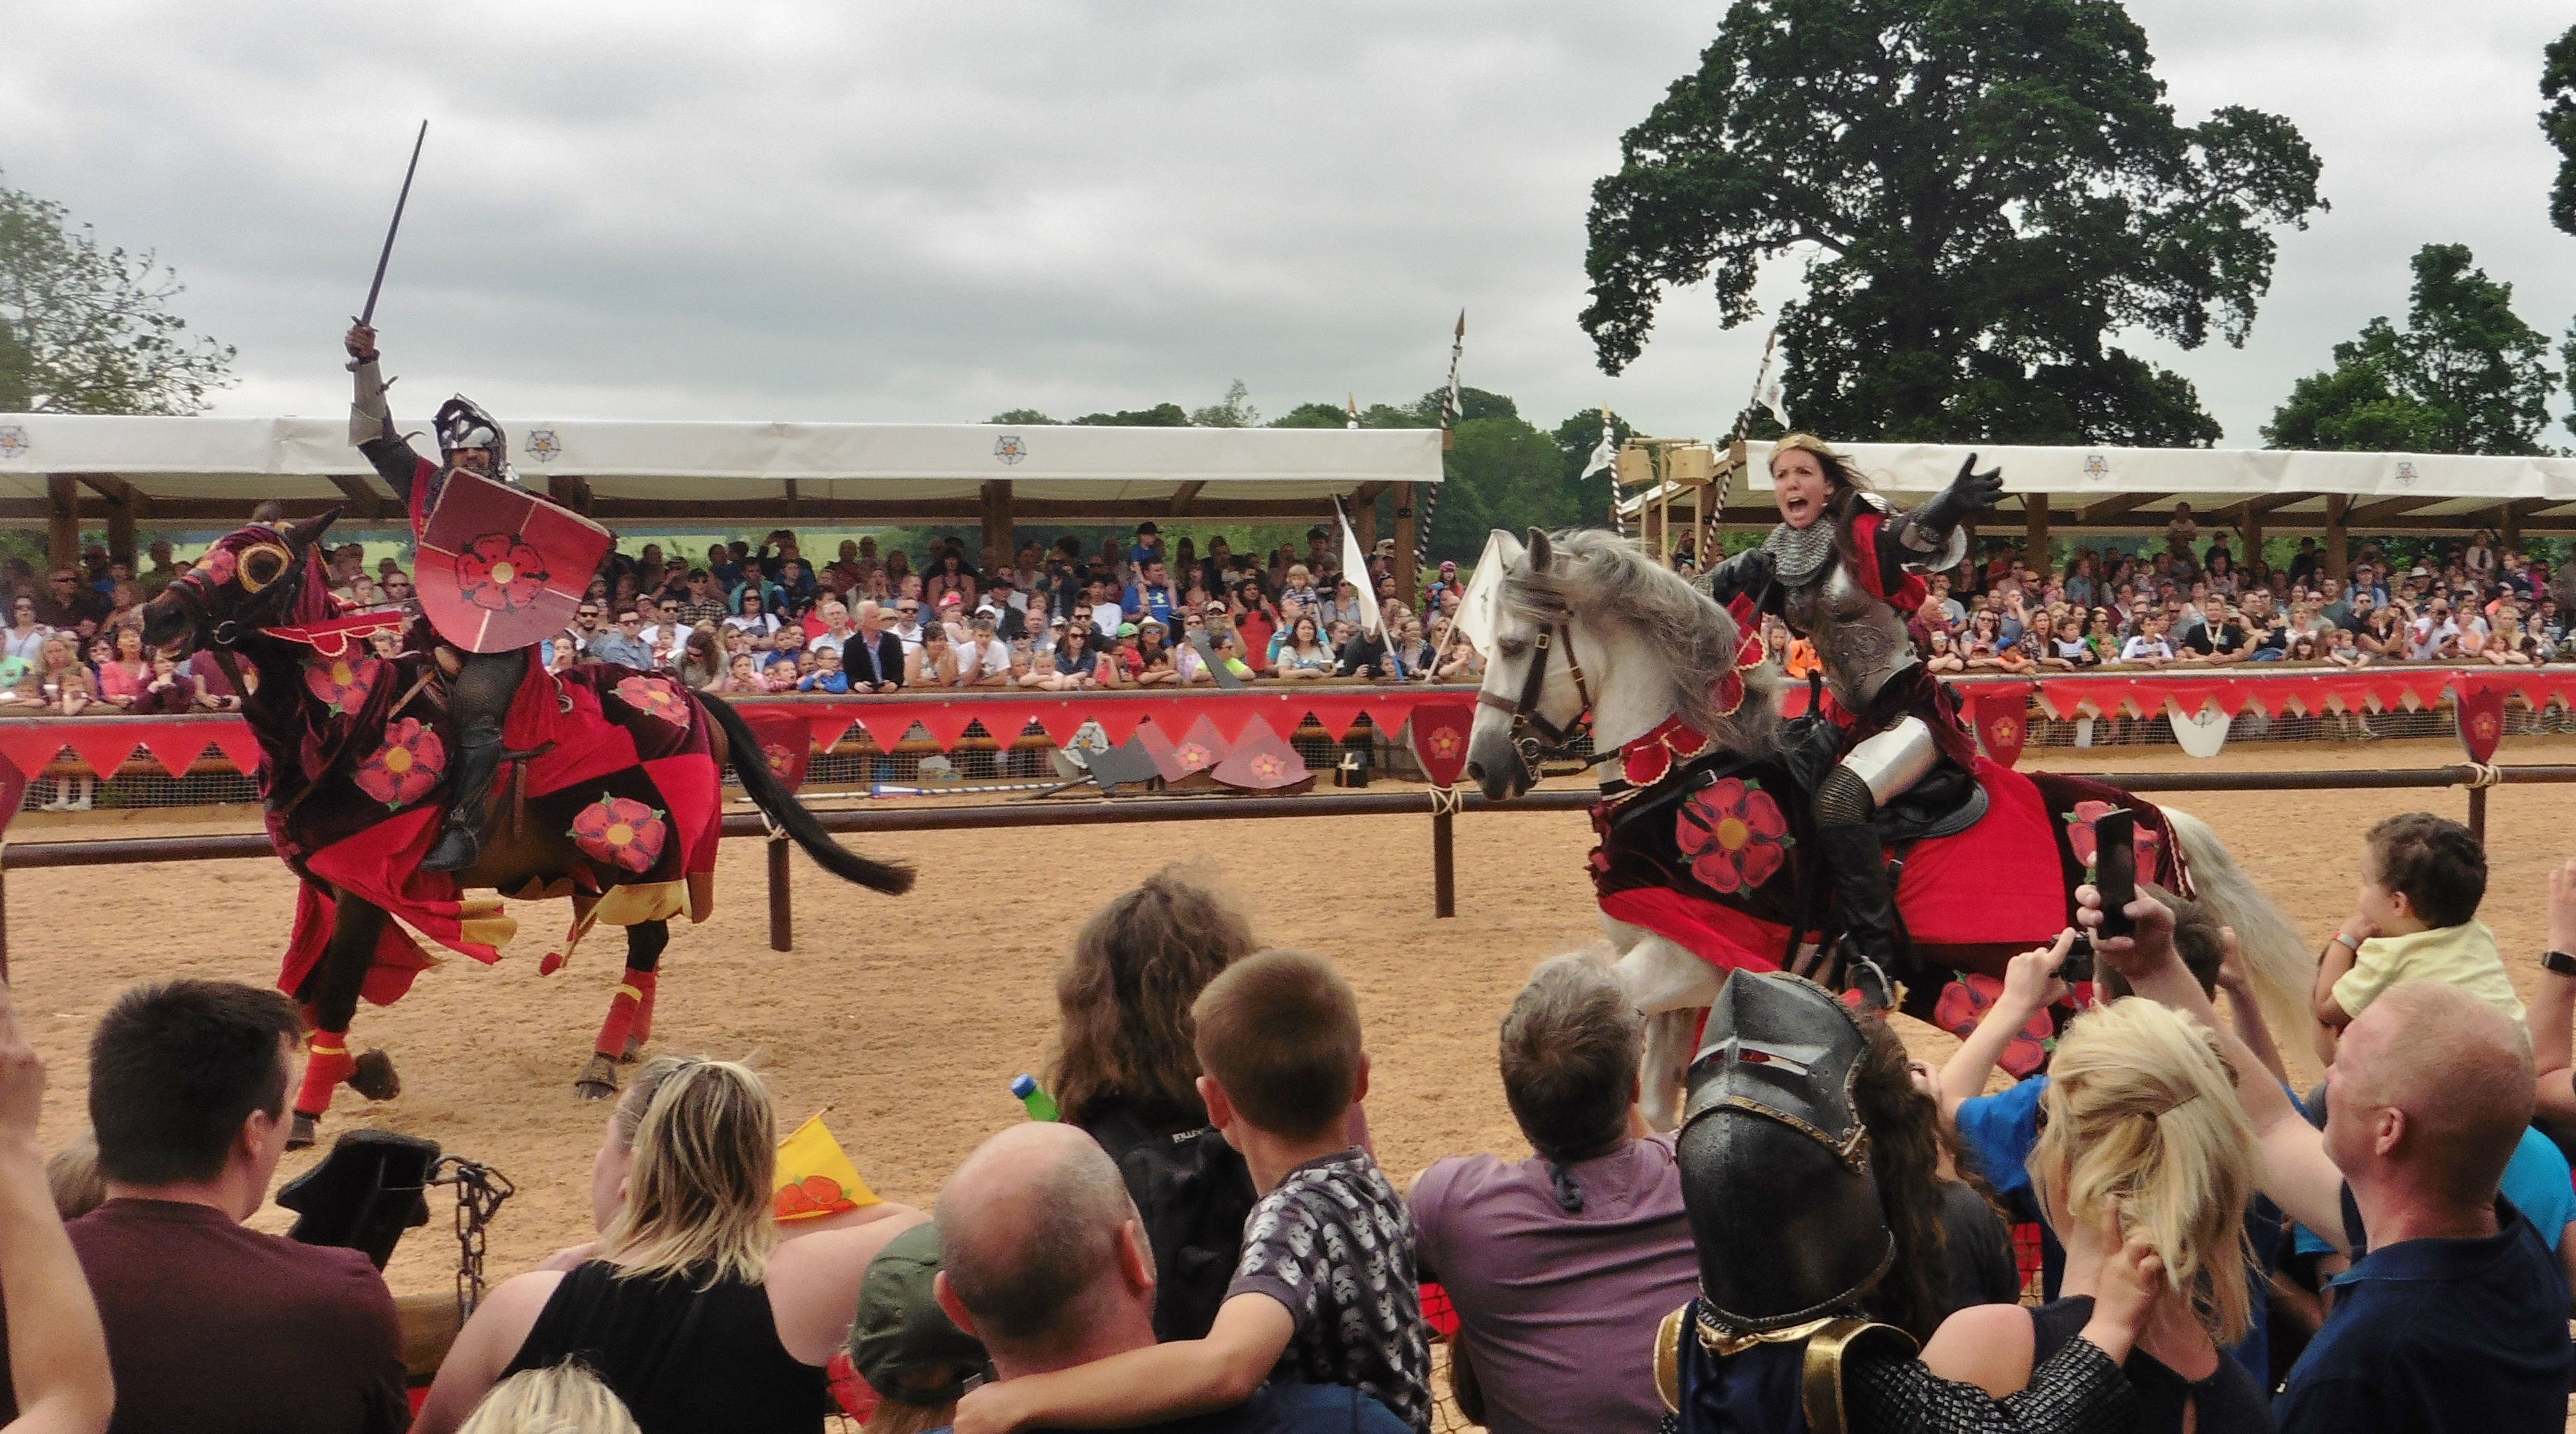 War of the Roses show at Warwick Castle May 27 2017